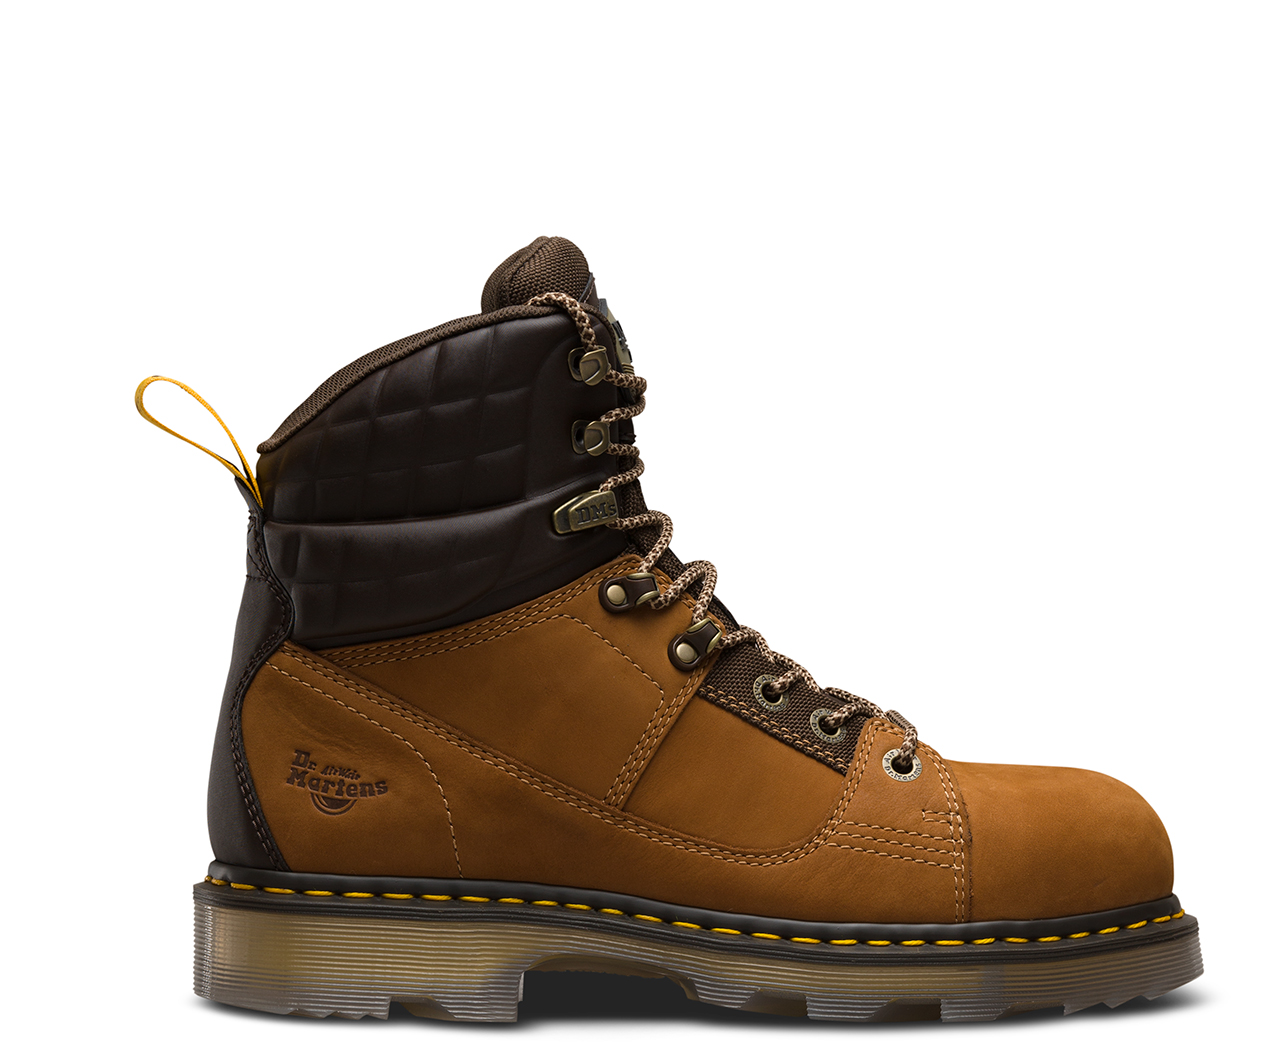 Camber Steel Toe Work Boots Amp Shoes The Official Us Dr